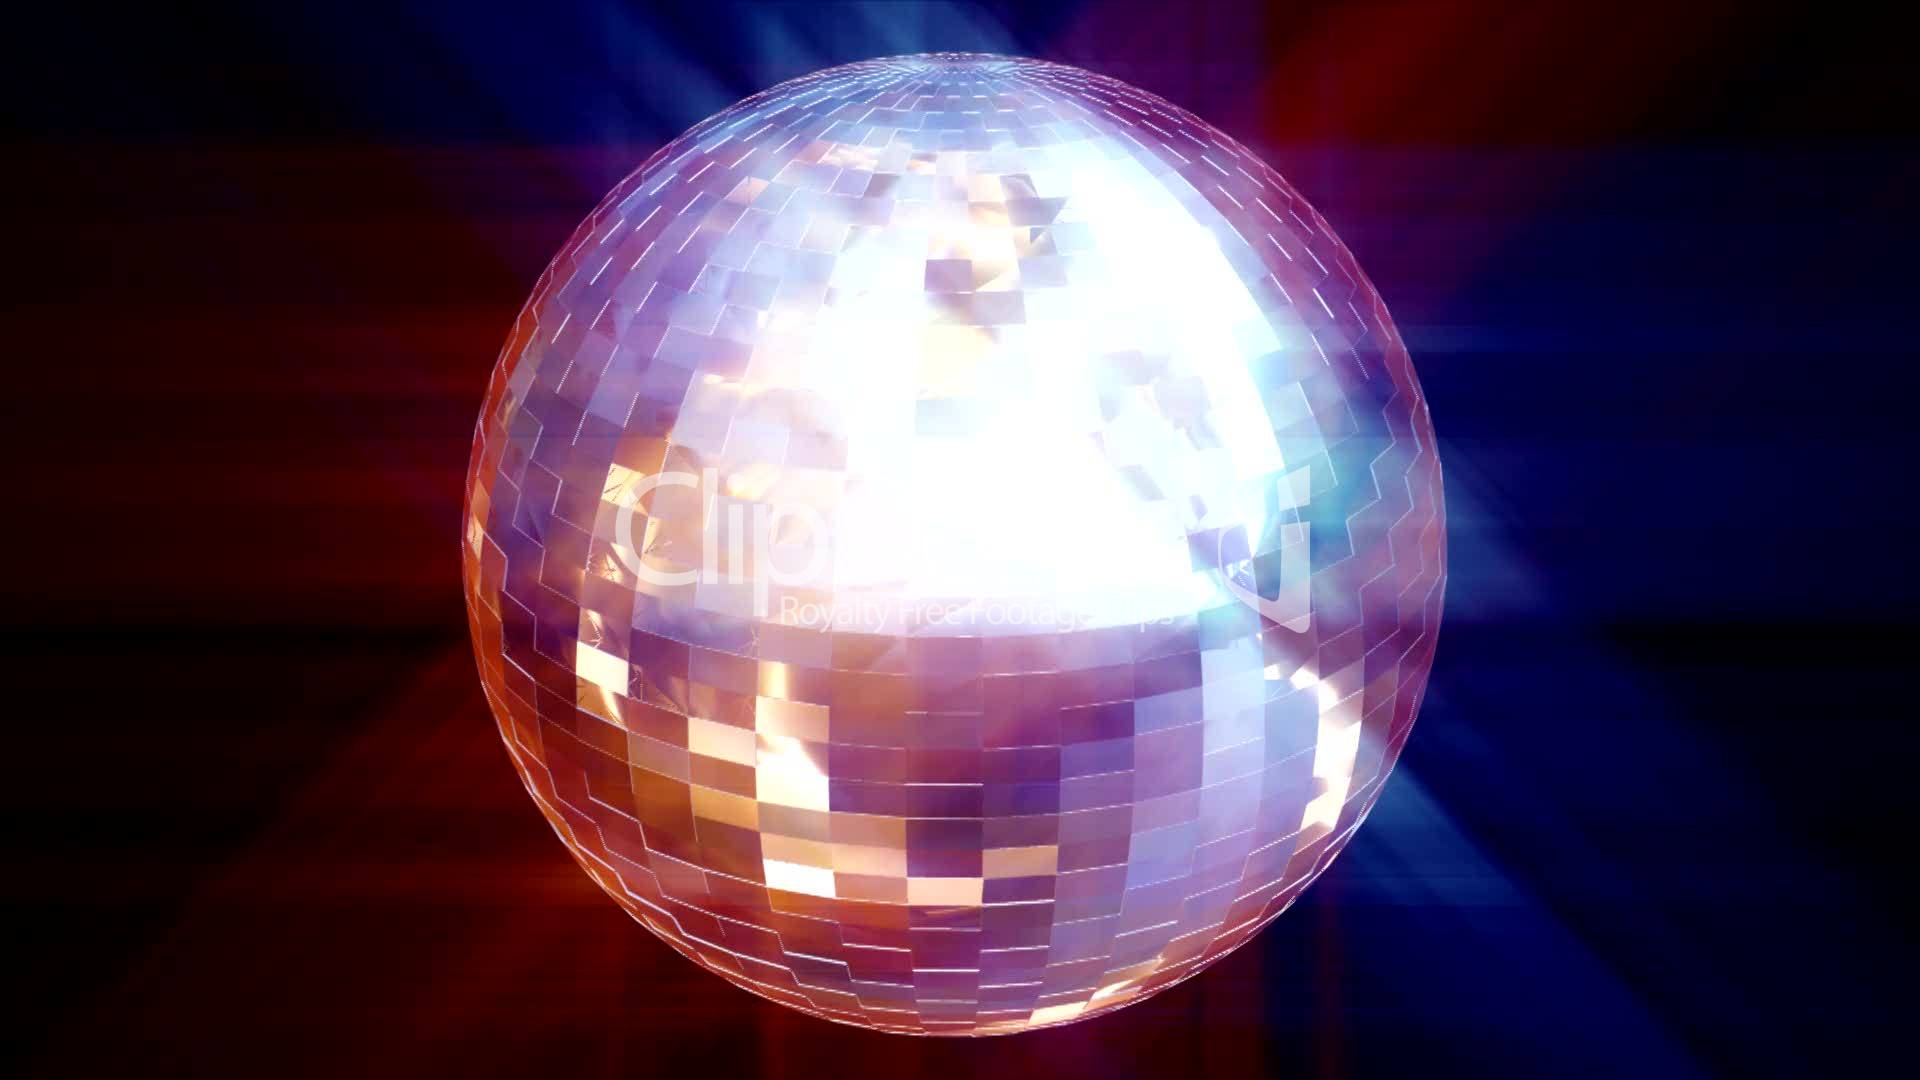 Hd Animated Disco Ball Royalty Free Video And Stock Footage